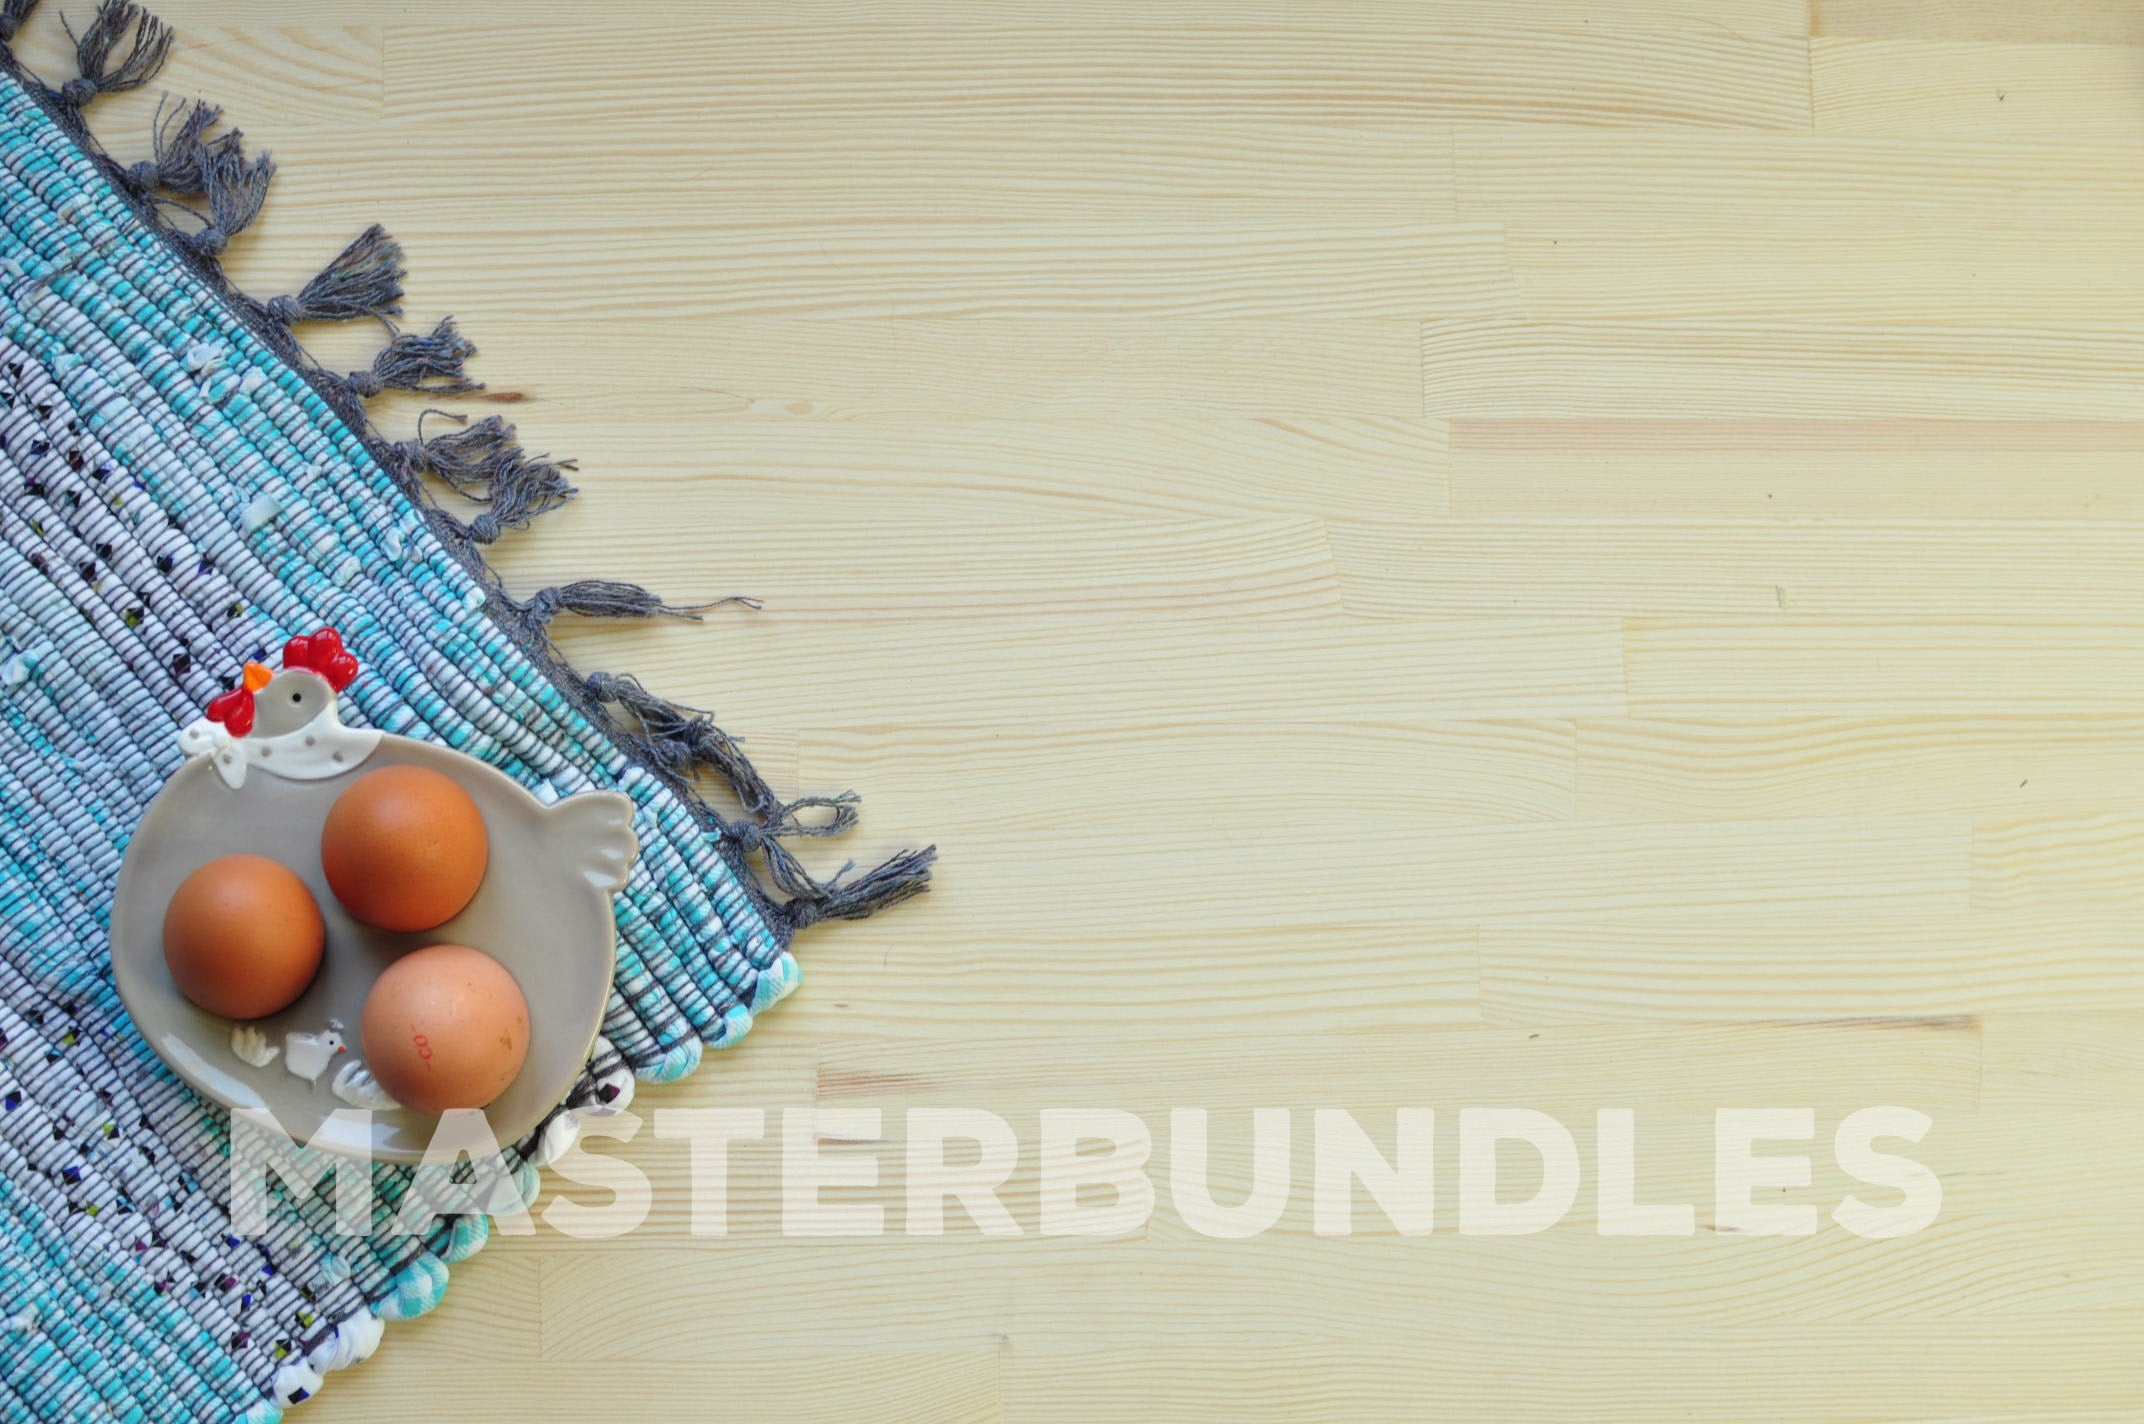 Three chicken eggs in a special stand and on a blue rug.